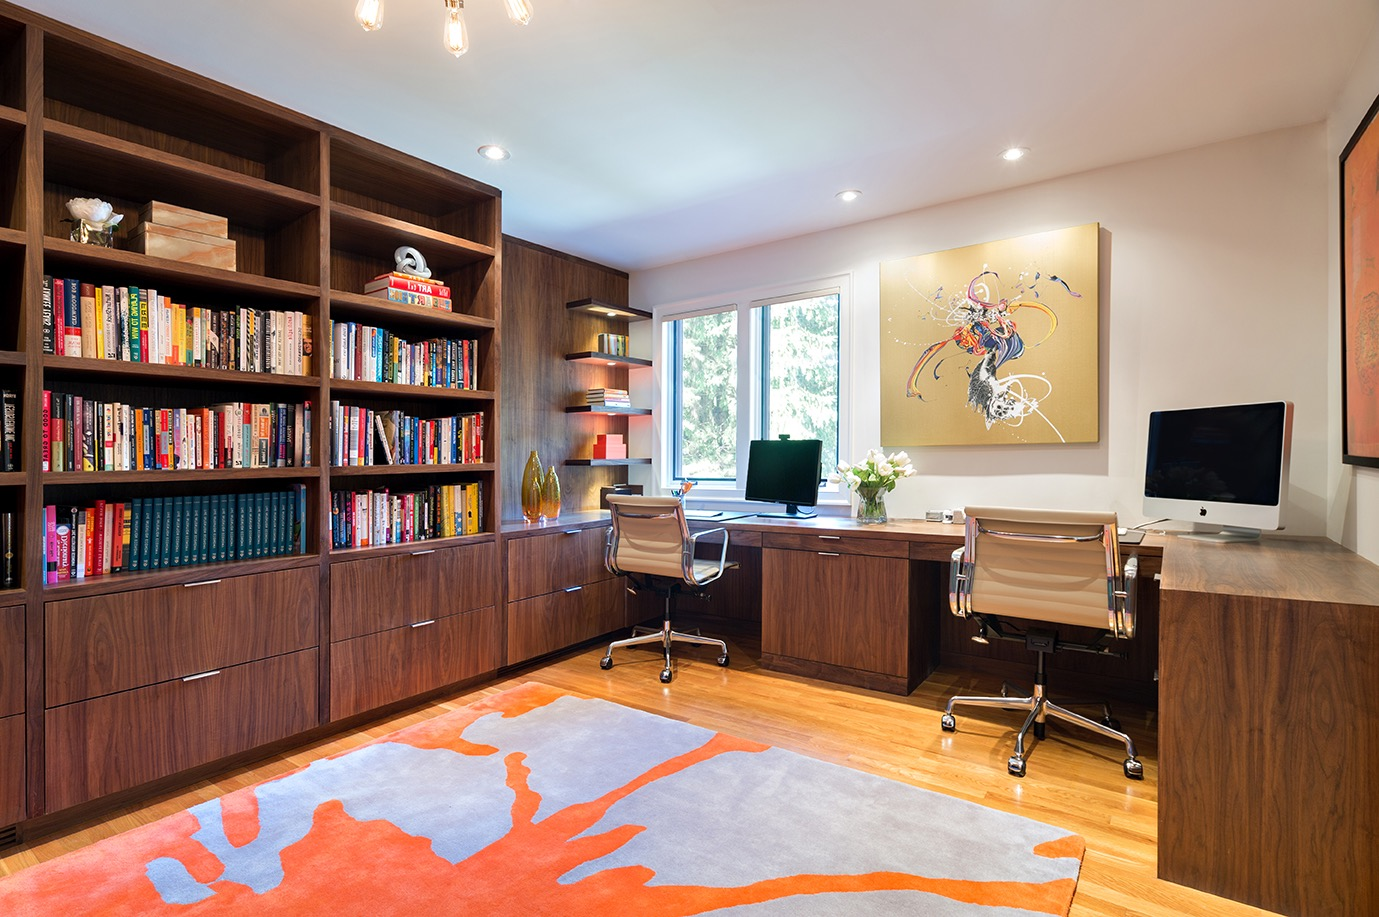 Contemporary Home Office With Built In Cabinet And Bookshelves (Image 7 of 50)